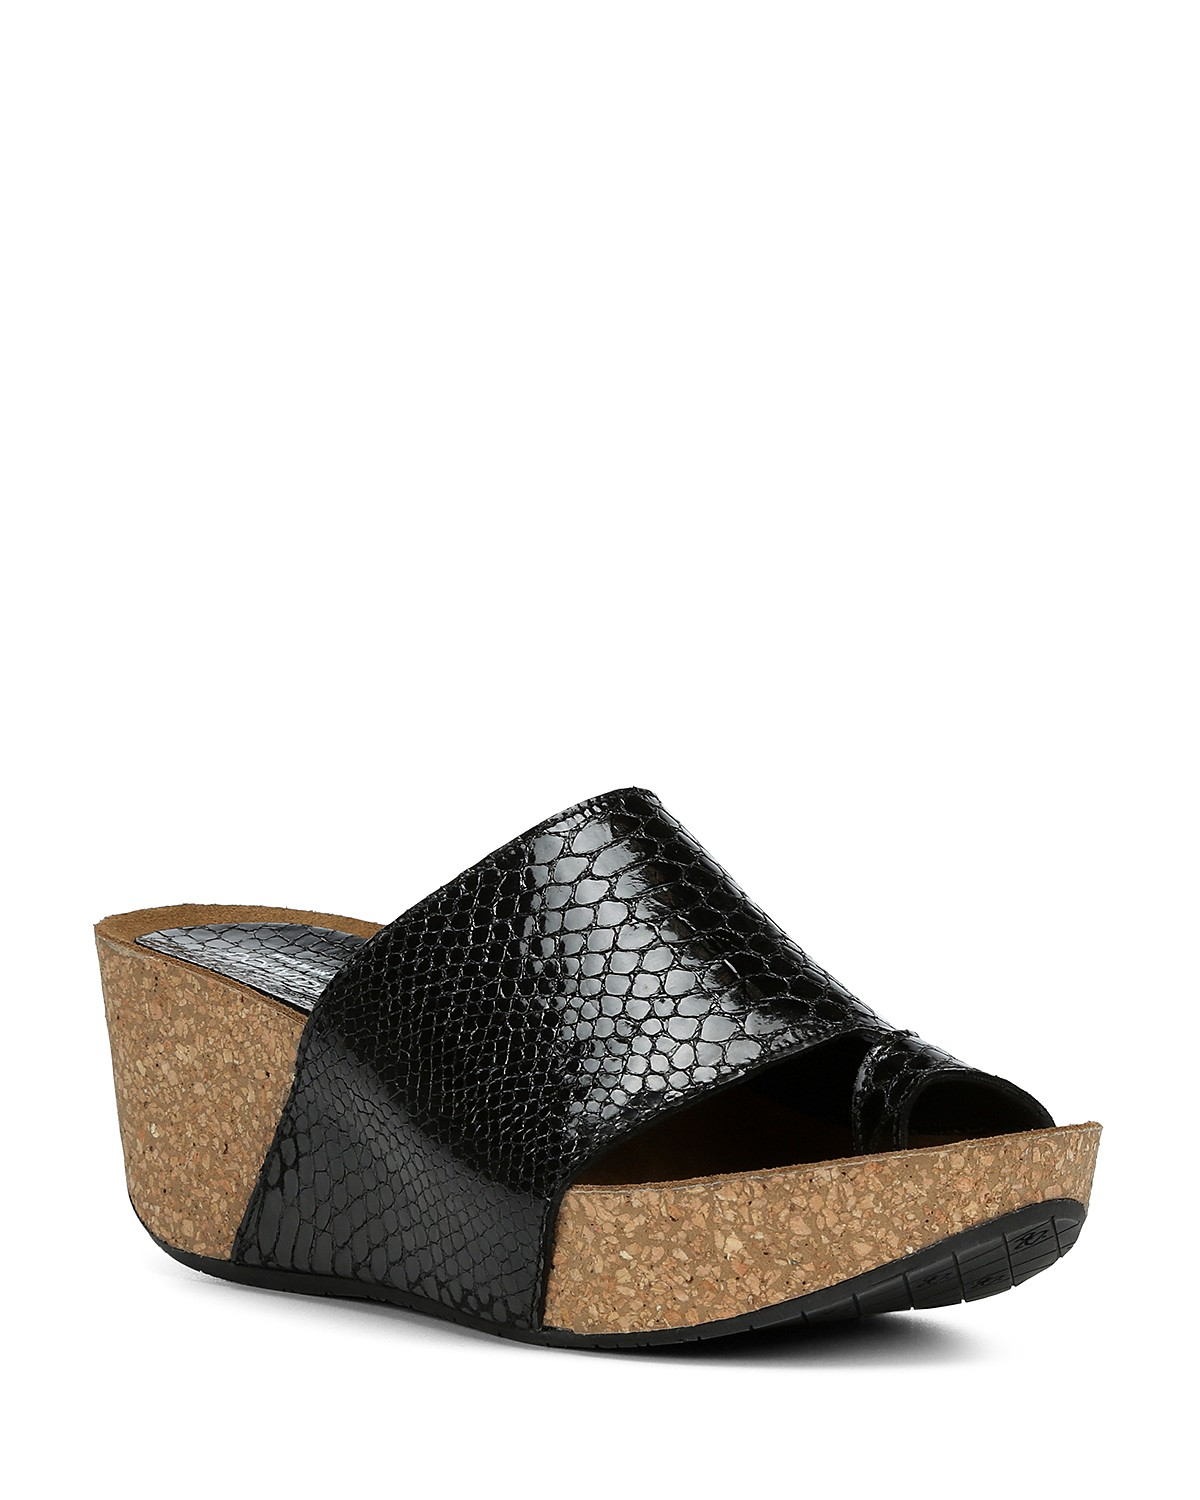 Donald Pliner Women's Ginie Embossed Leather Platform Wedge Sandals YNjQzfcj